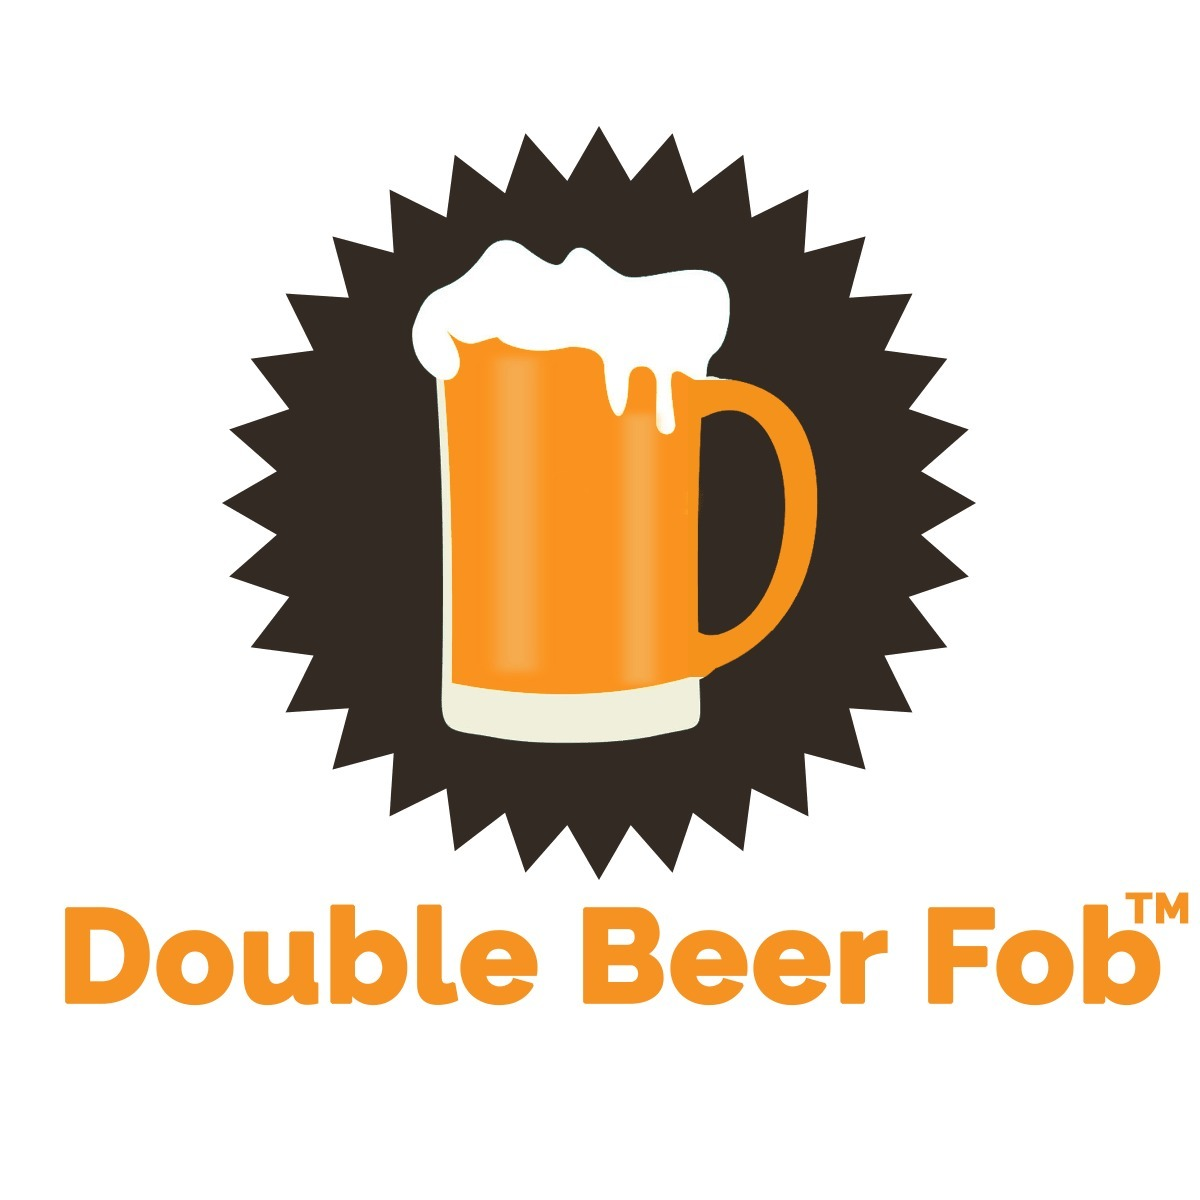 Double Beer ob (@doublebeerfob) Cover Image